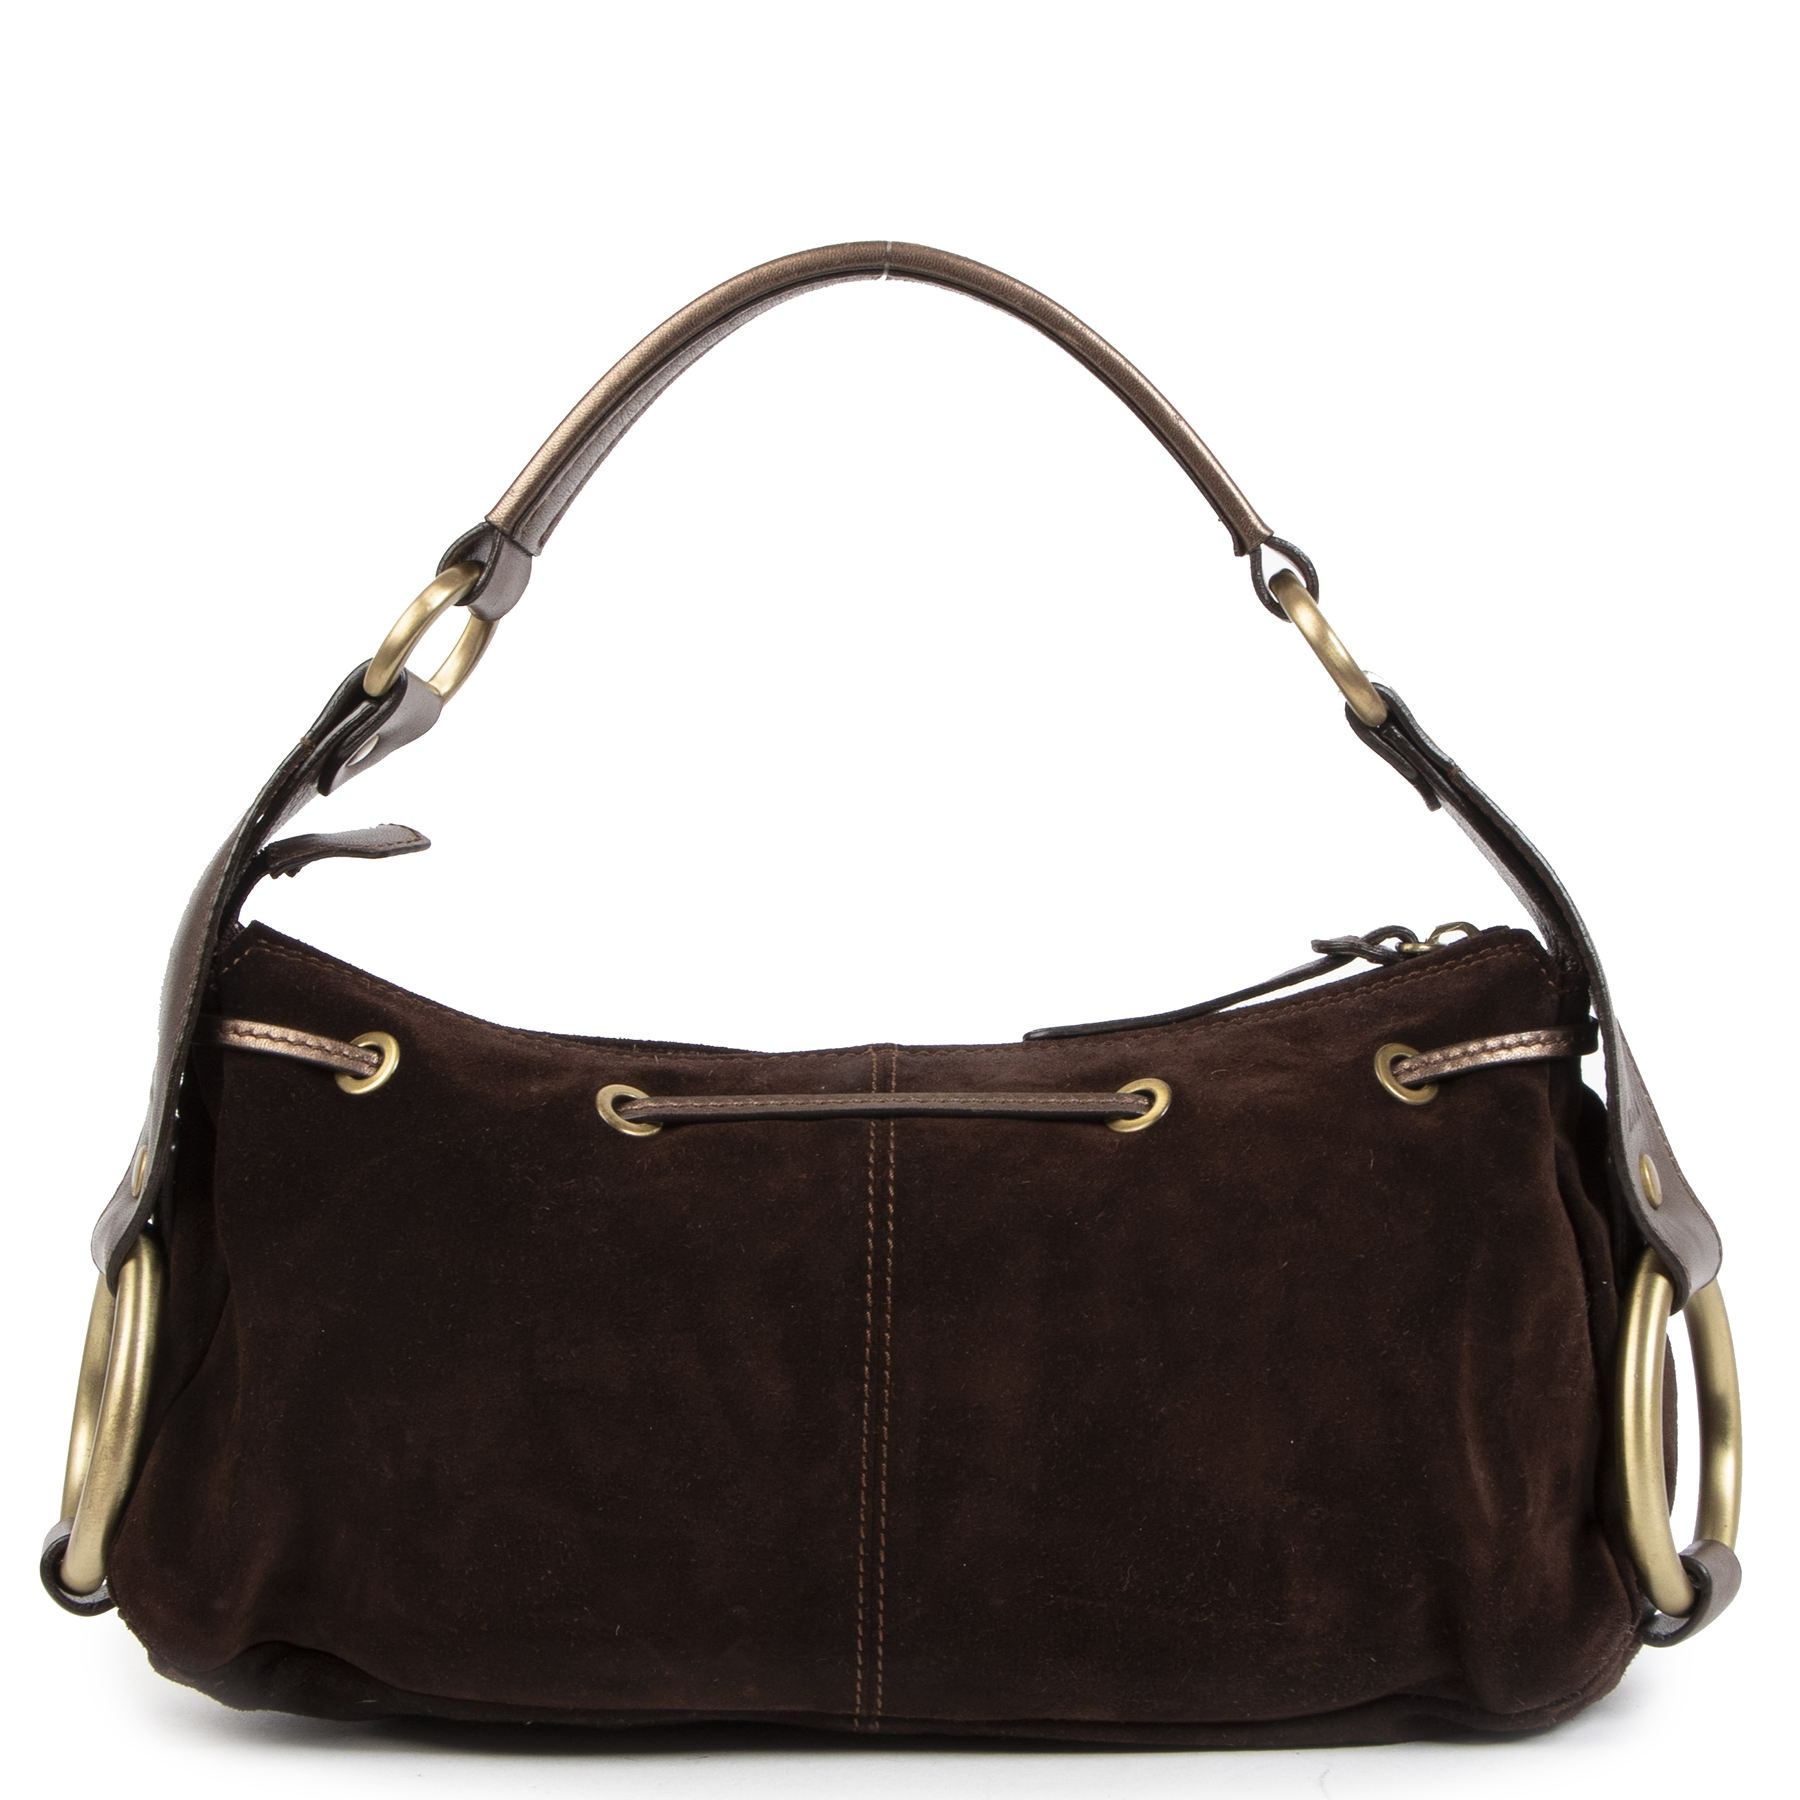 Authentique seconde-main vintage Hogan Suede Brown Shoulder Bag achète en ligne webshop LabelLOV